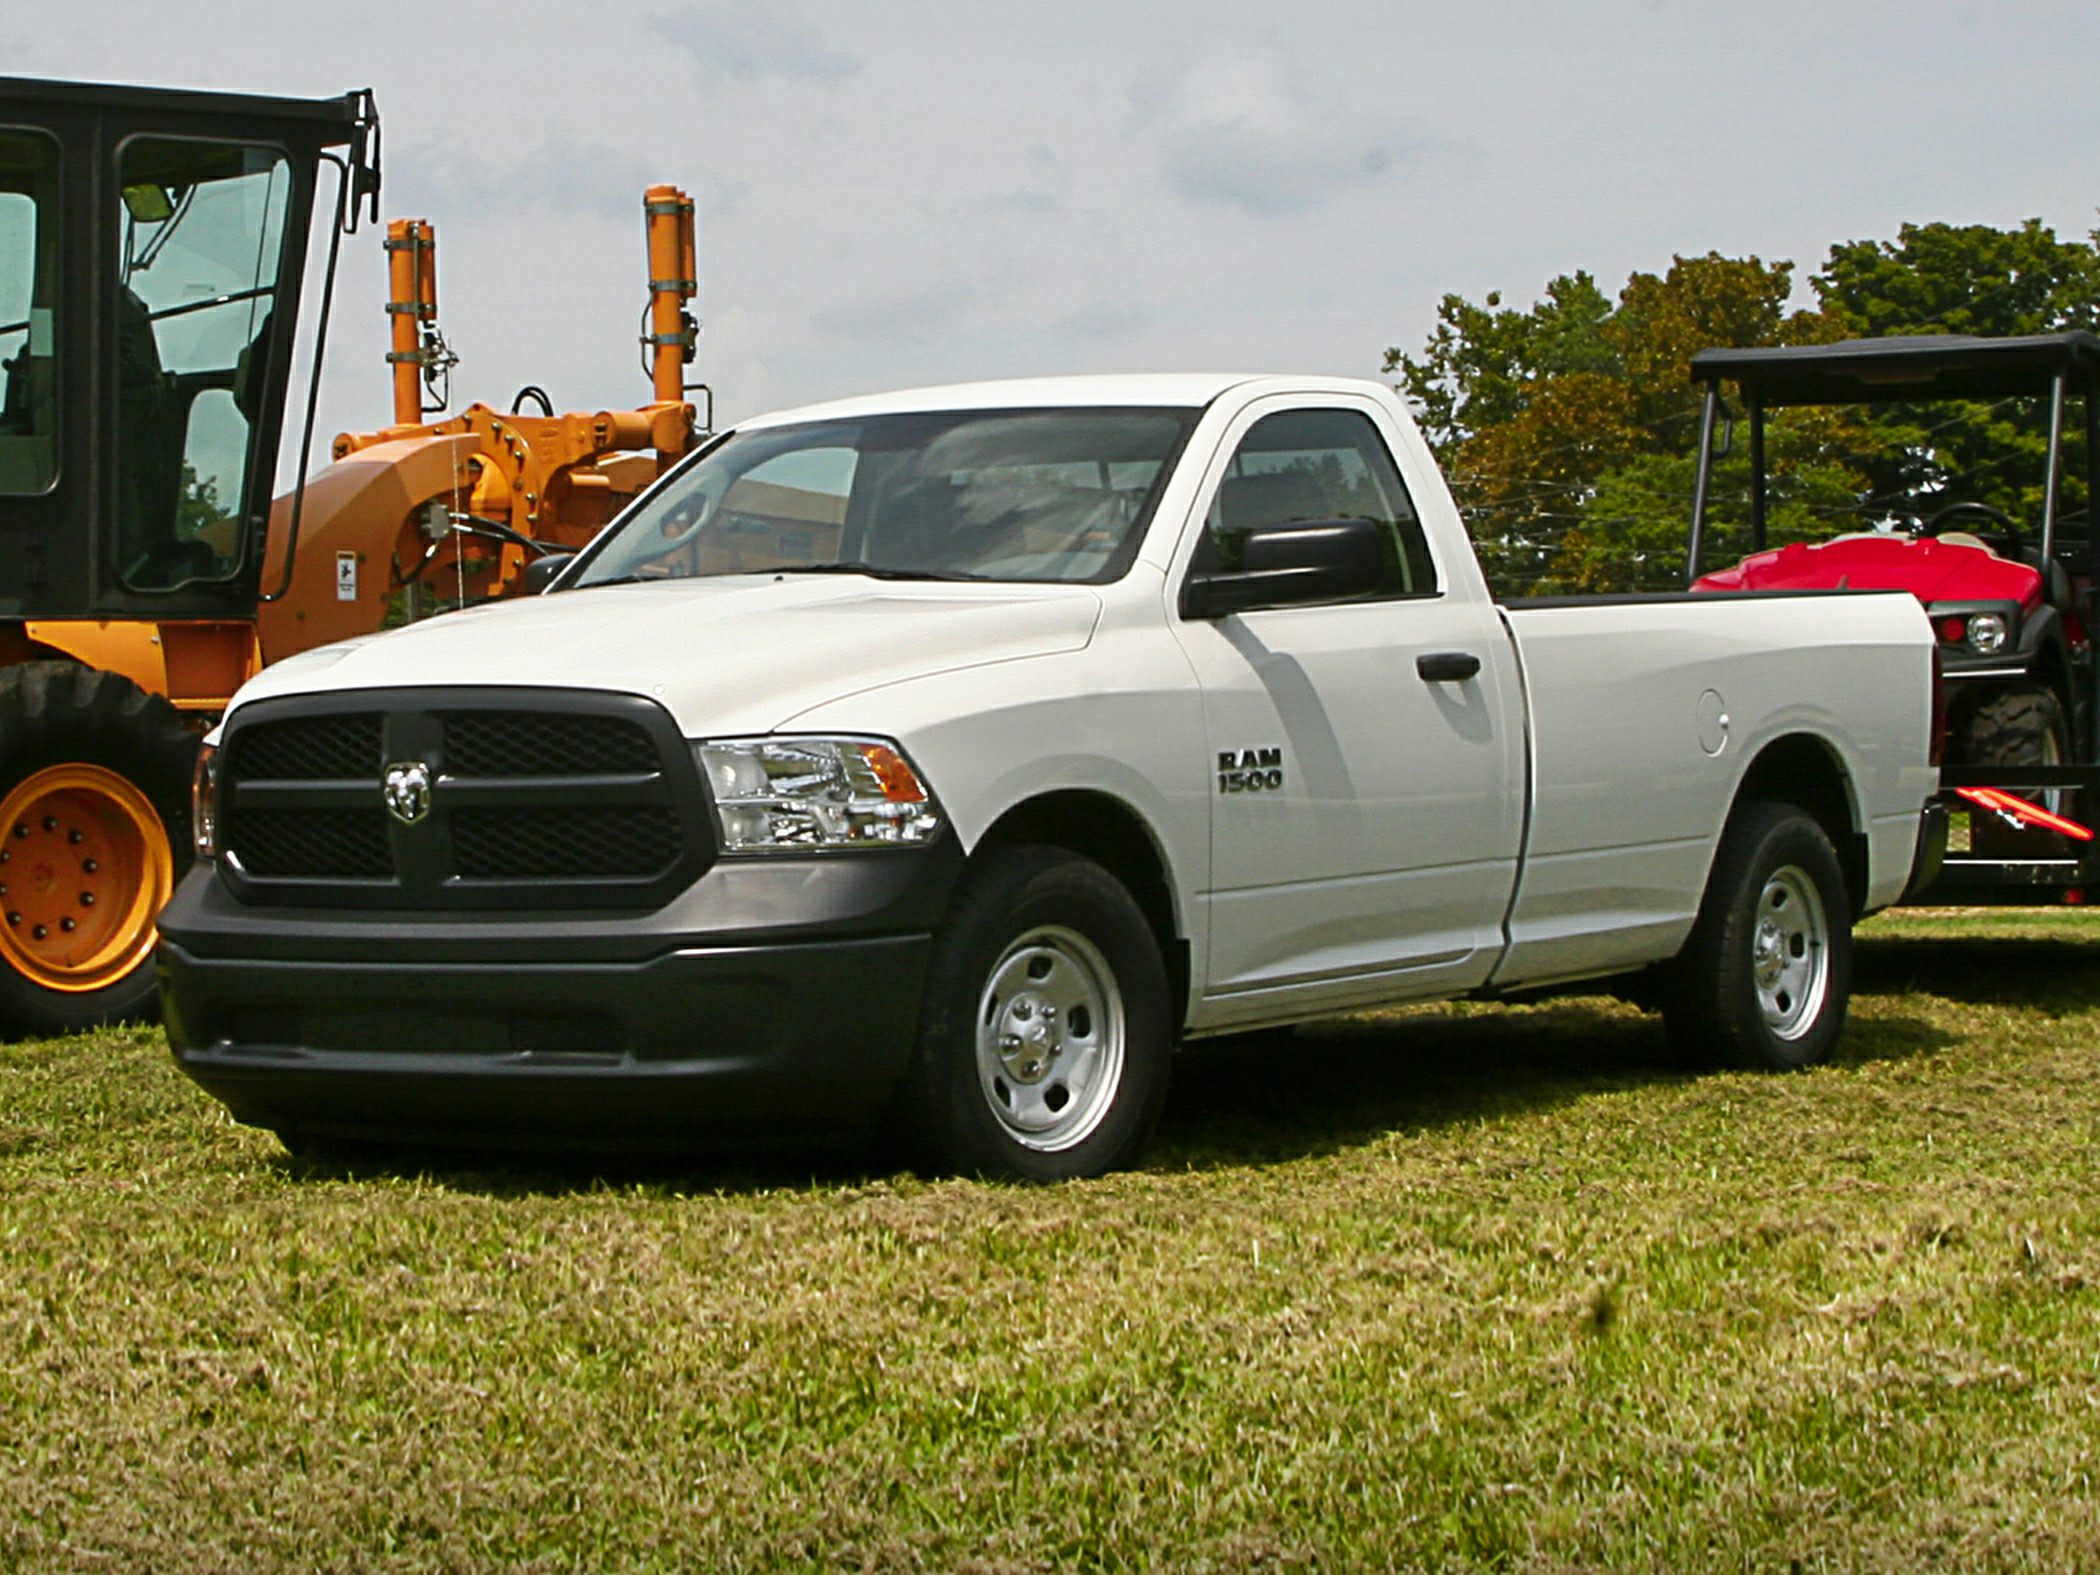 2013 Dodge Ram 1500 Tradesman Gray 6 SpeakersAMFM radioRadio data systemAir ConditioningPower